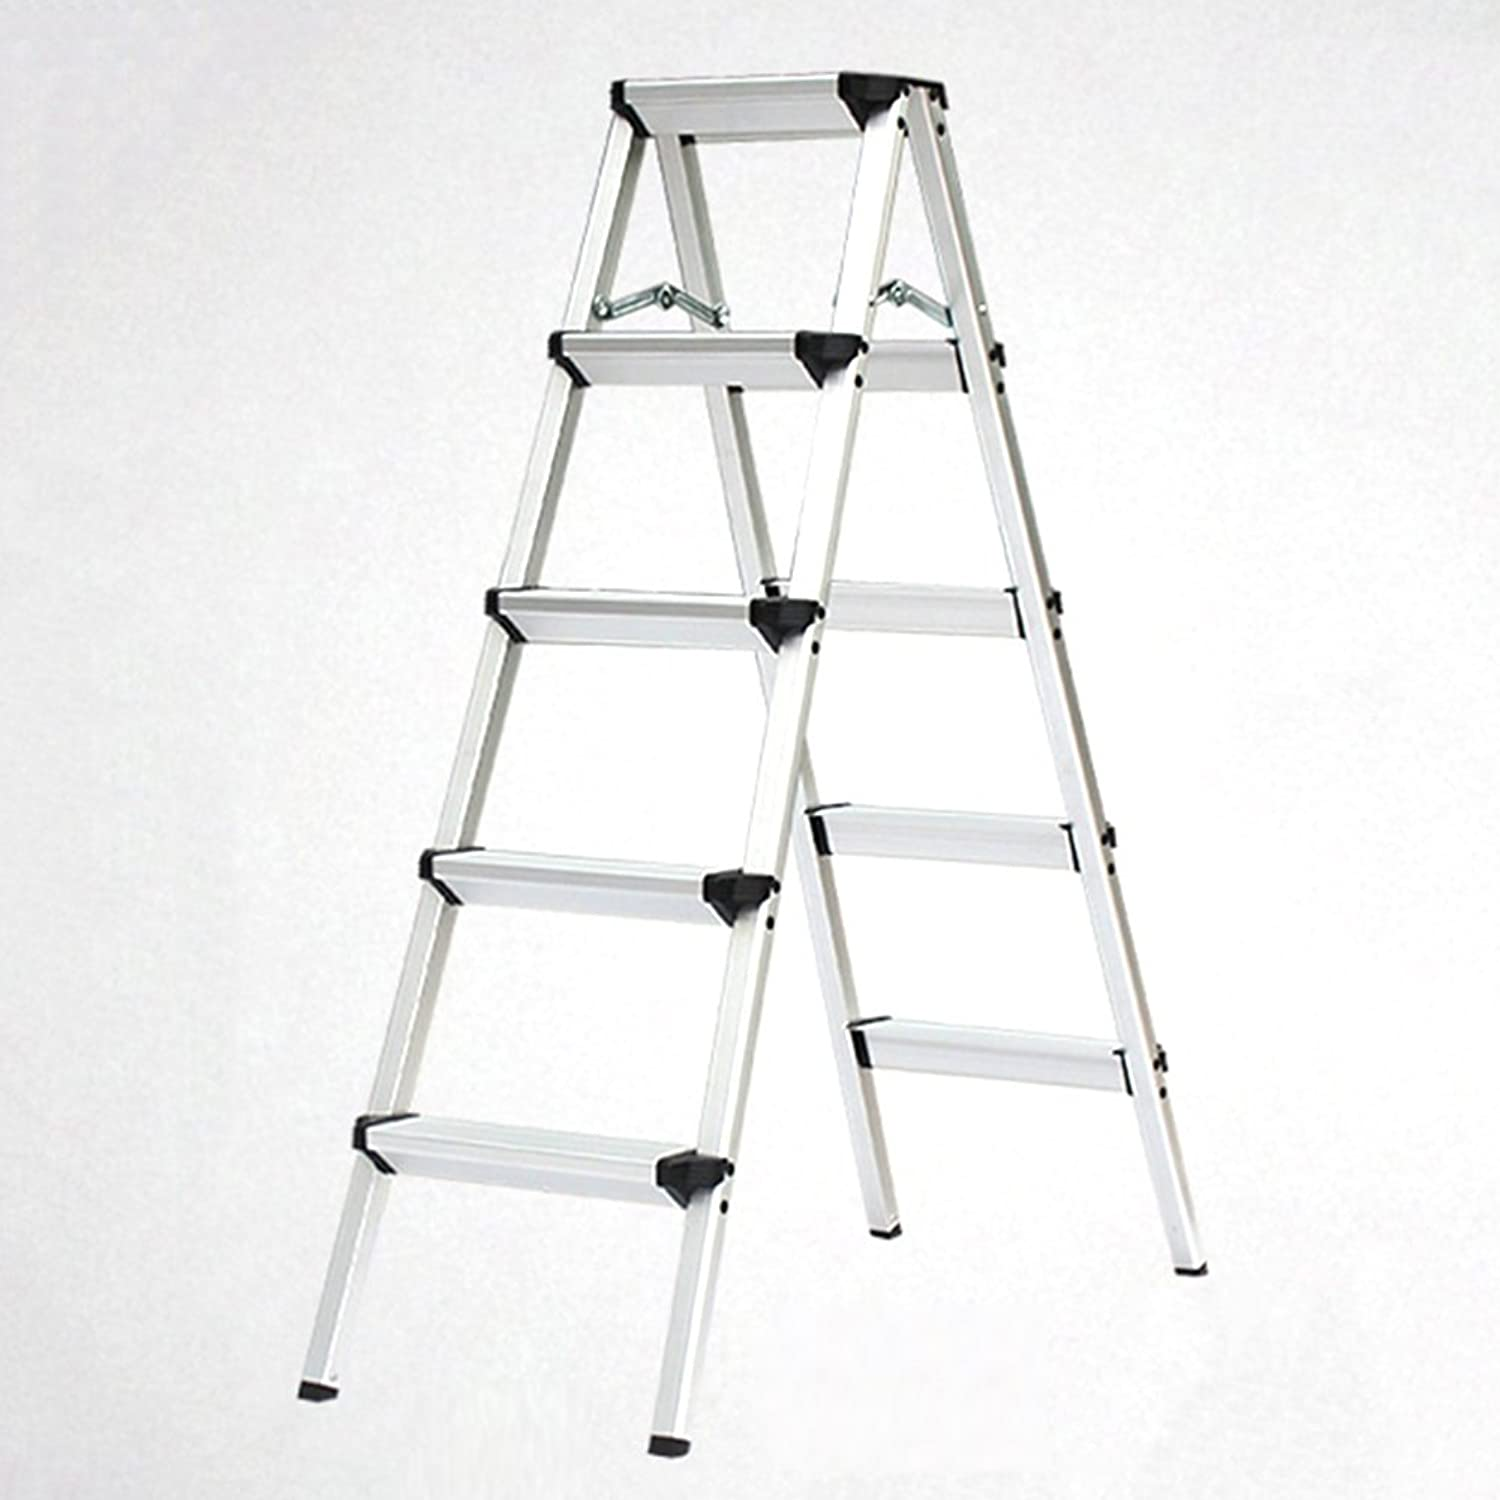 Staircase Stool TH Ladder Stools Heavy Duty Steel Folding Portable Wide Step Ladder Stool AntiSlip Household Step Stools Load 150kg (Size   5 step)